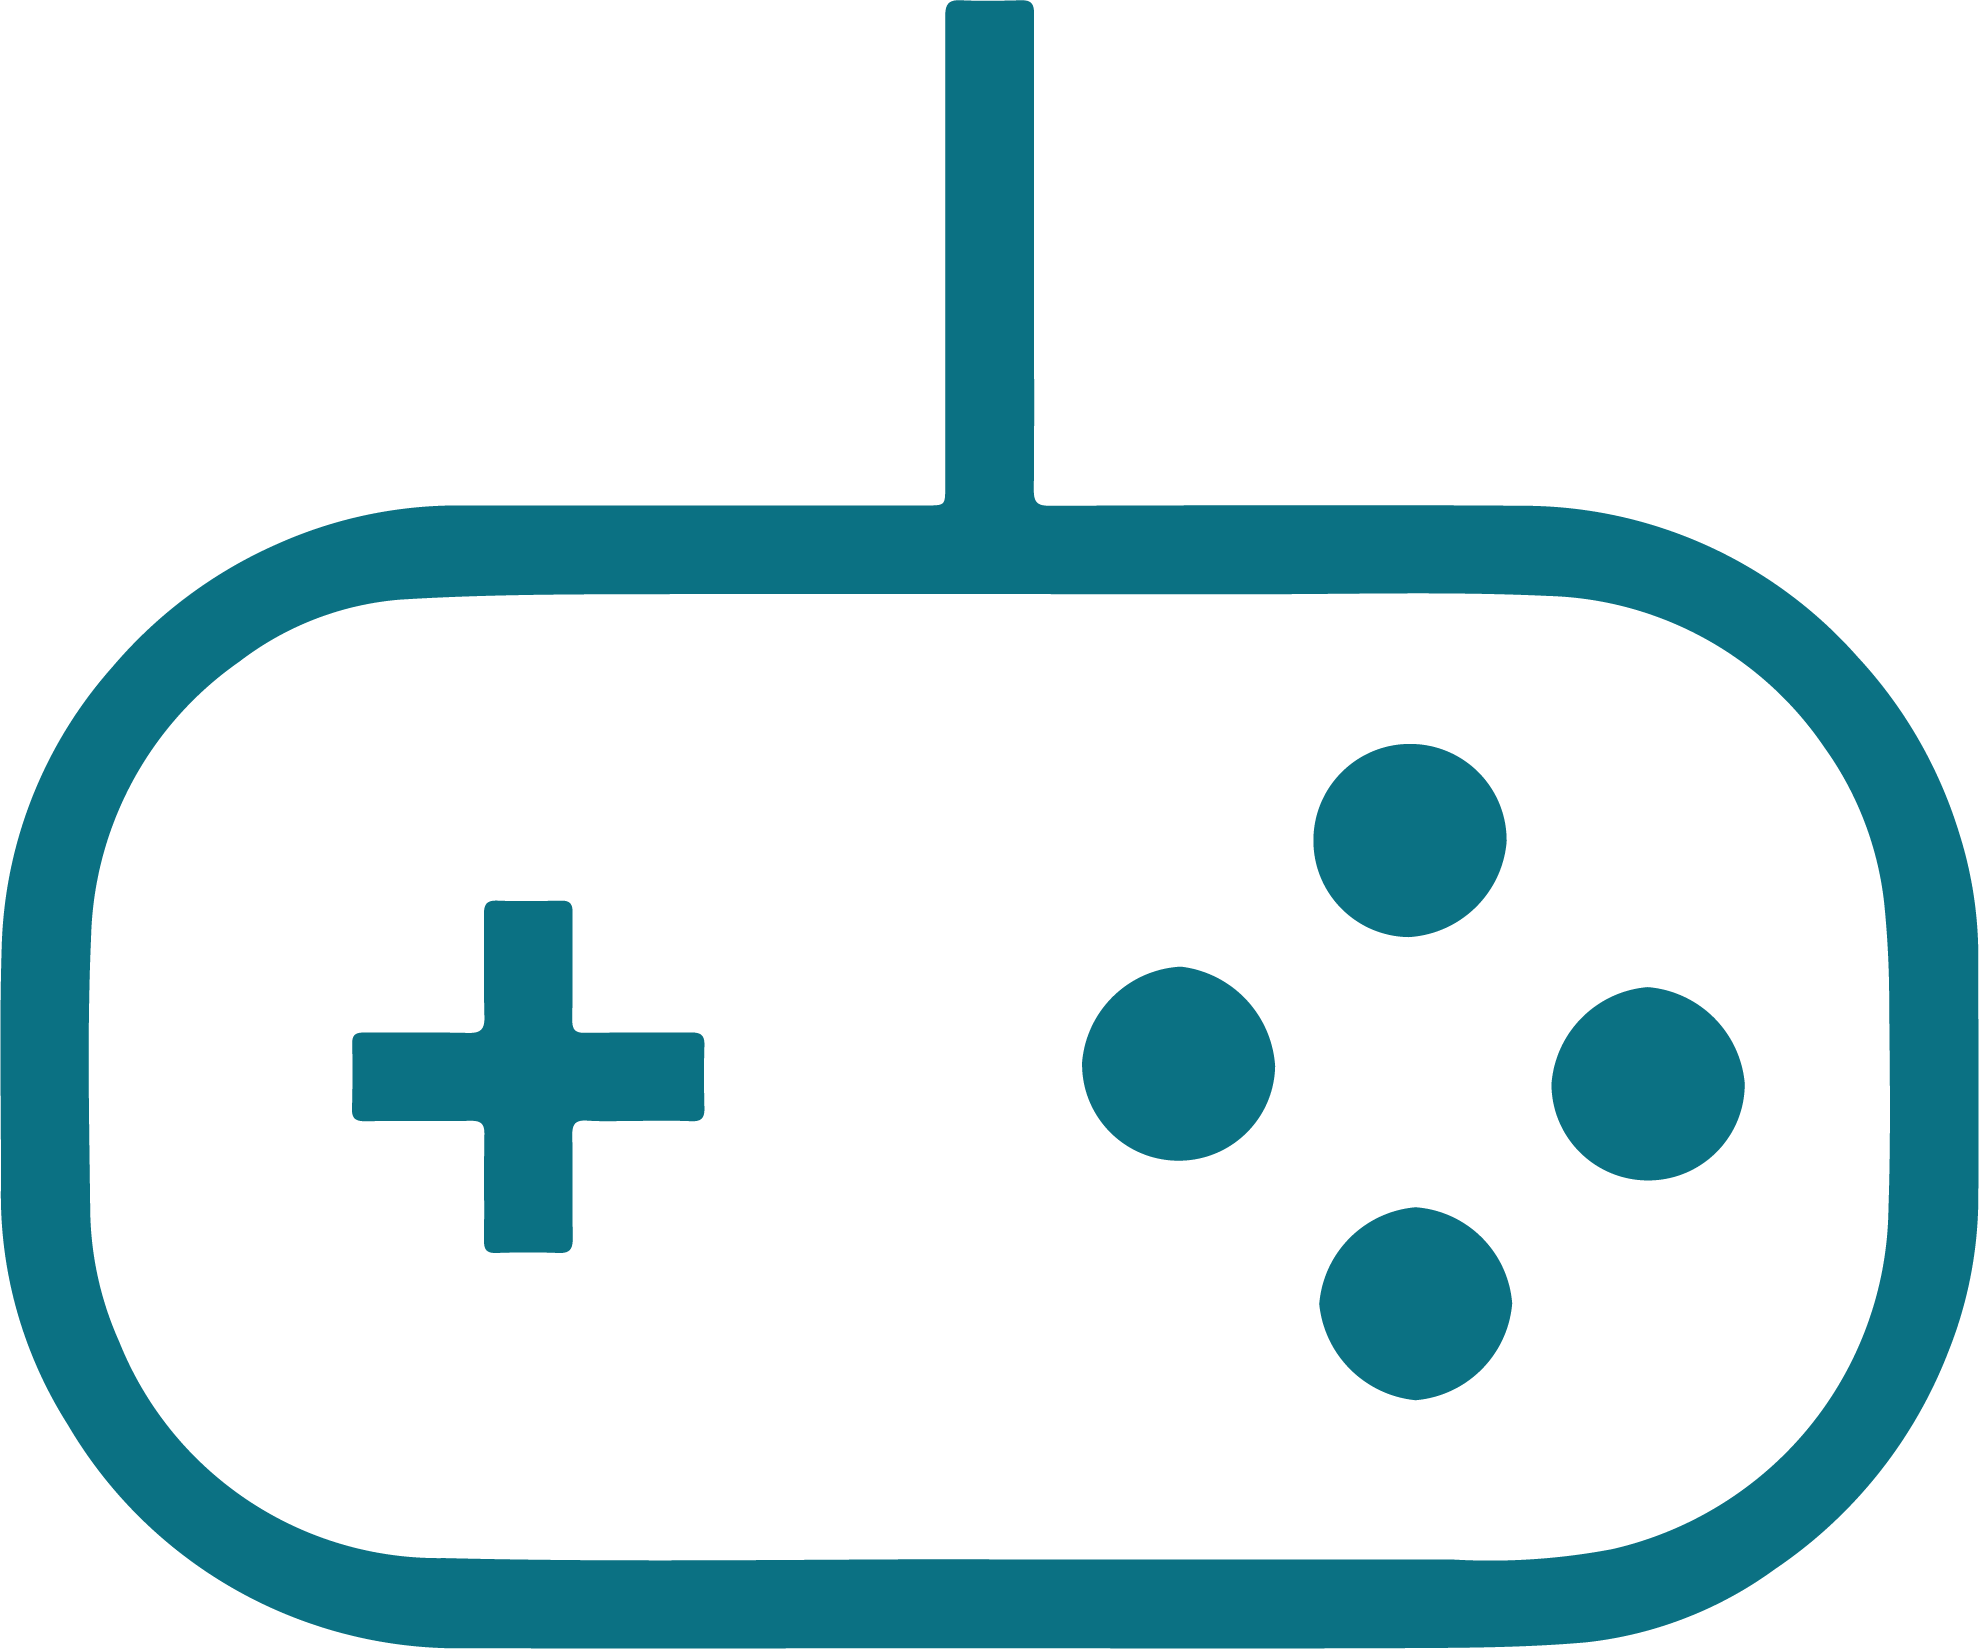 gameification_icon@2x